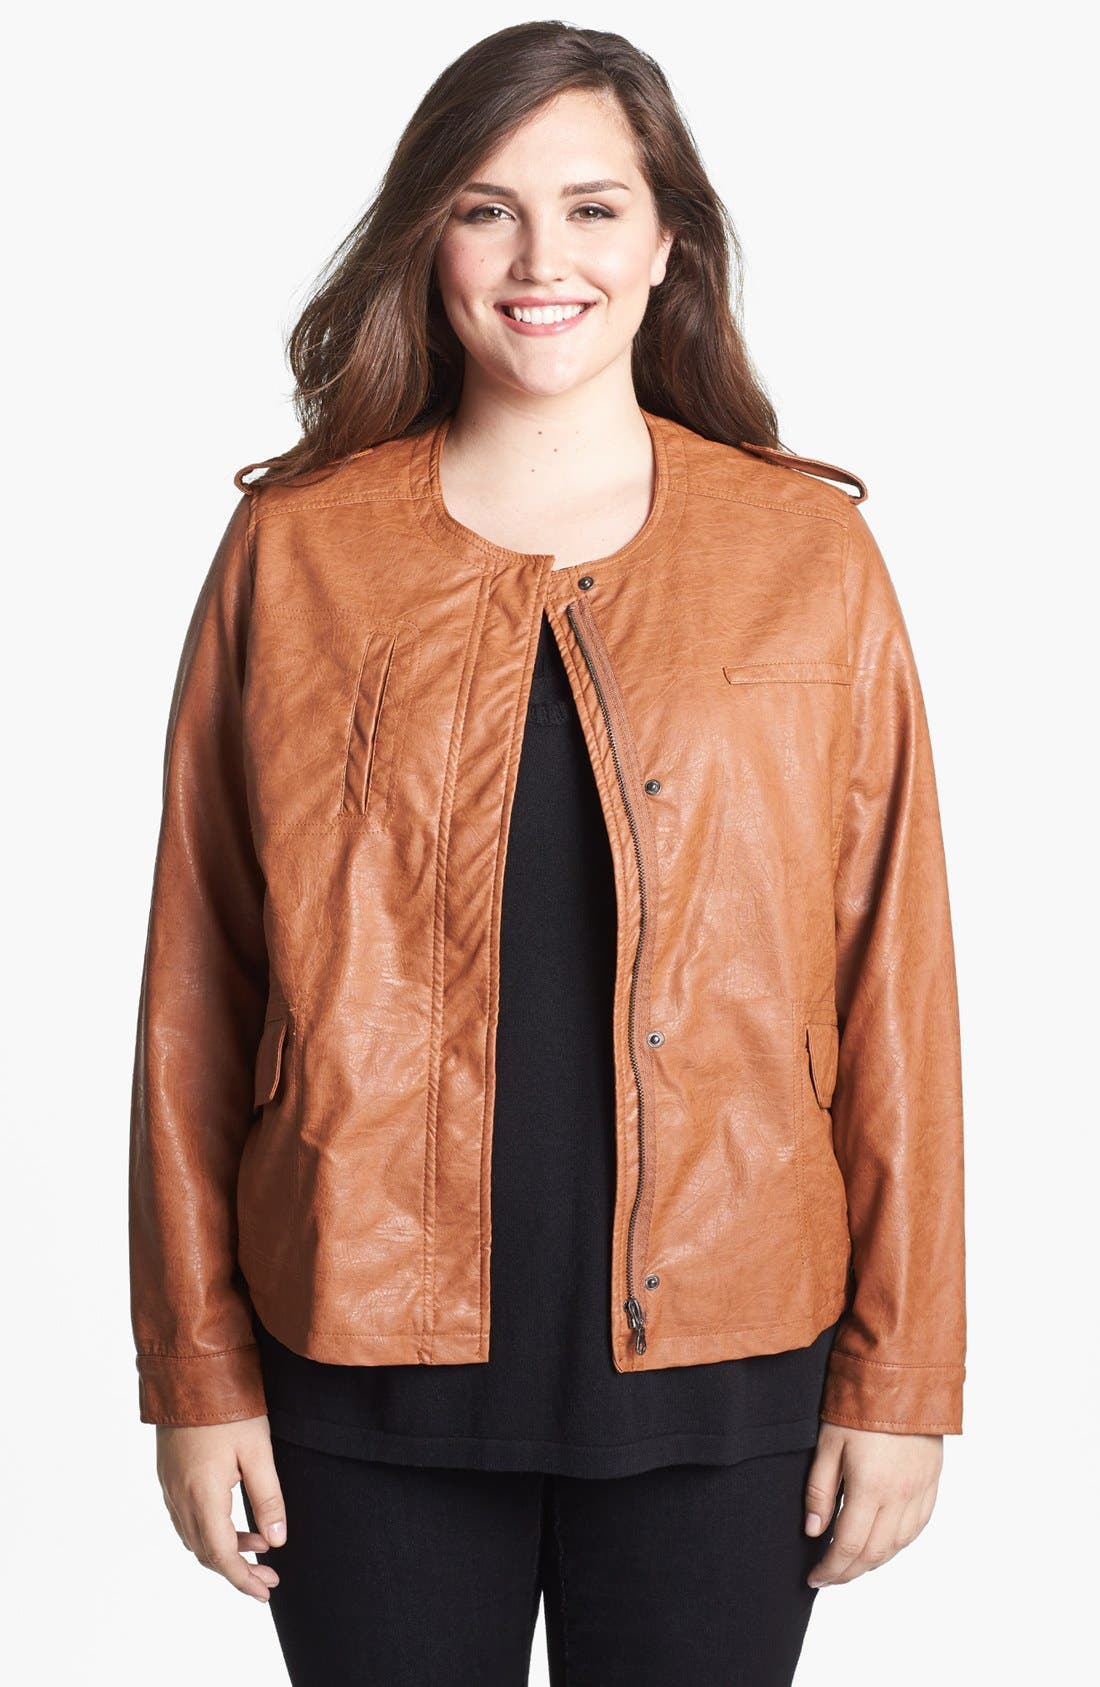 Alternate Image 1 Selected - DKNY Collarless Faux Leather Jacket (Plus Size)